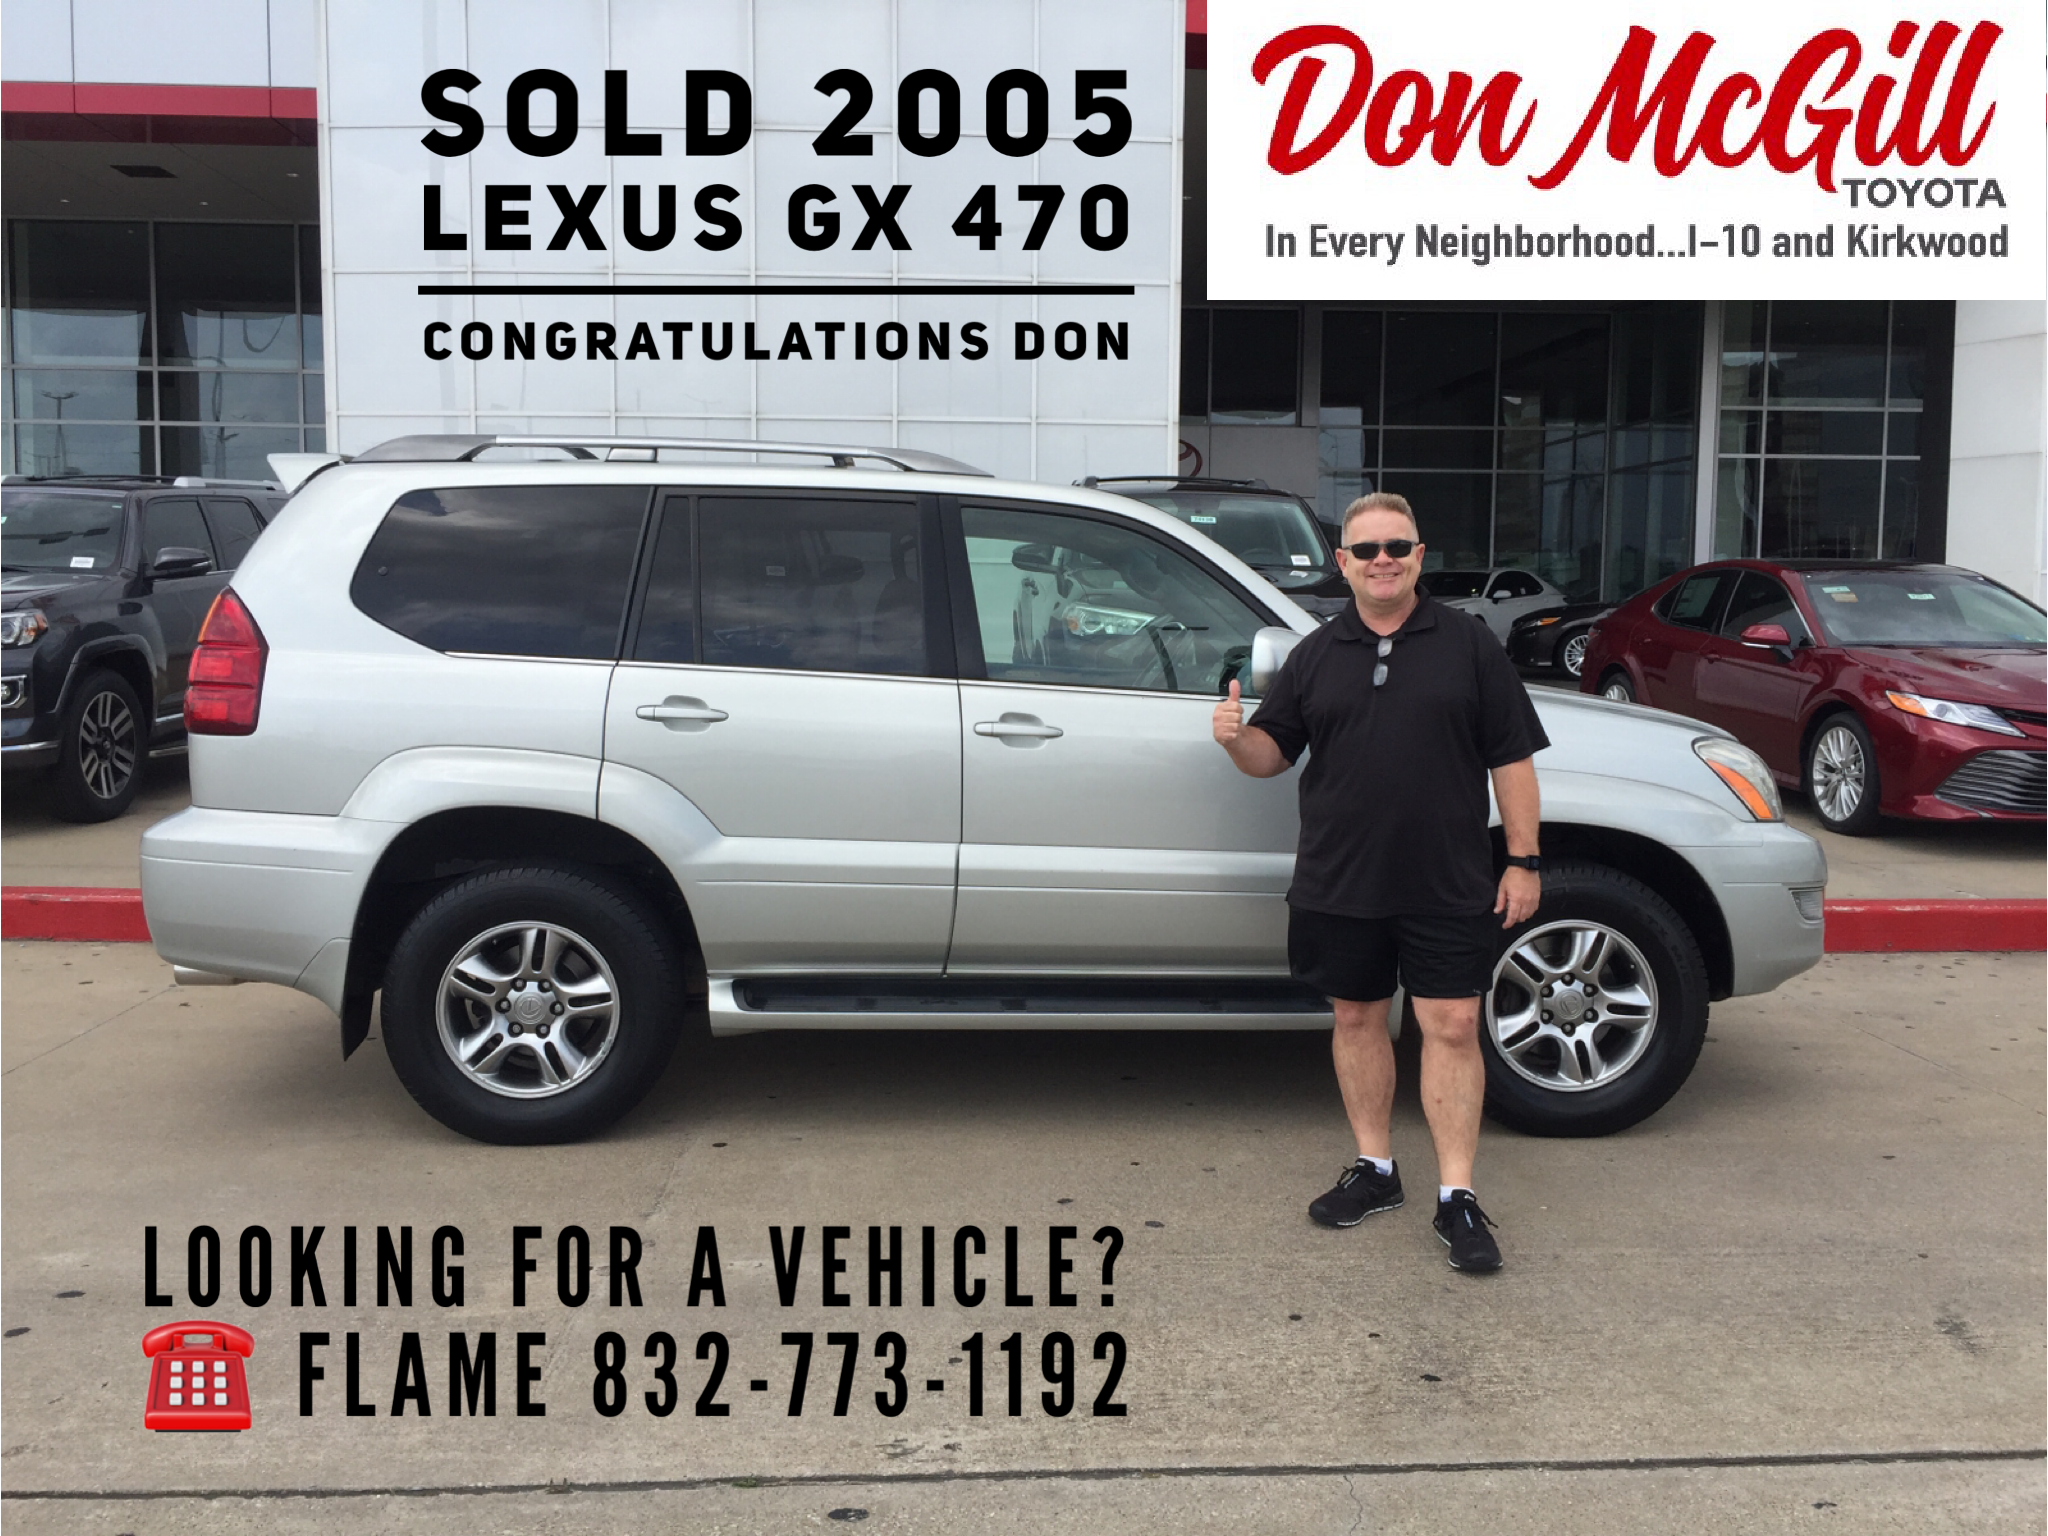 Great Don McGill Toyota 11800 Katy Freeway Houston, TX 77079 Call Or Text Flame @  832